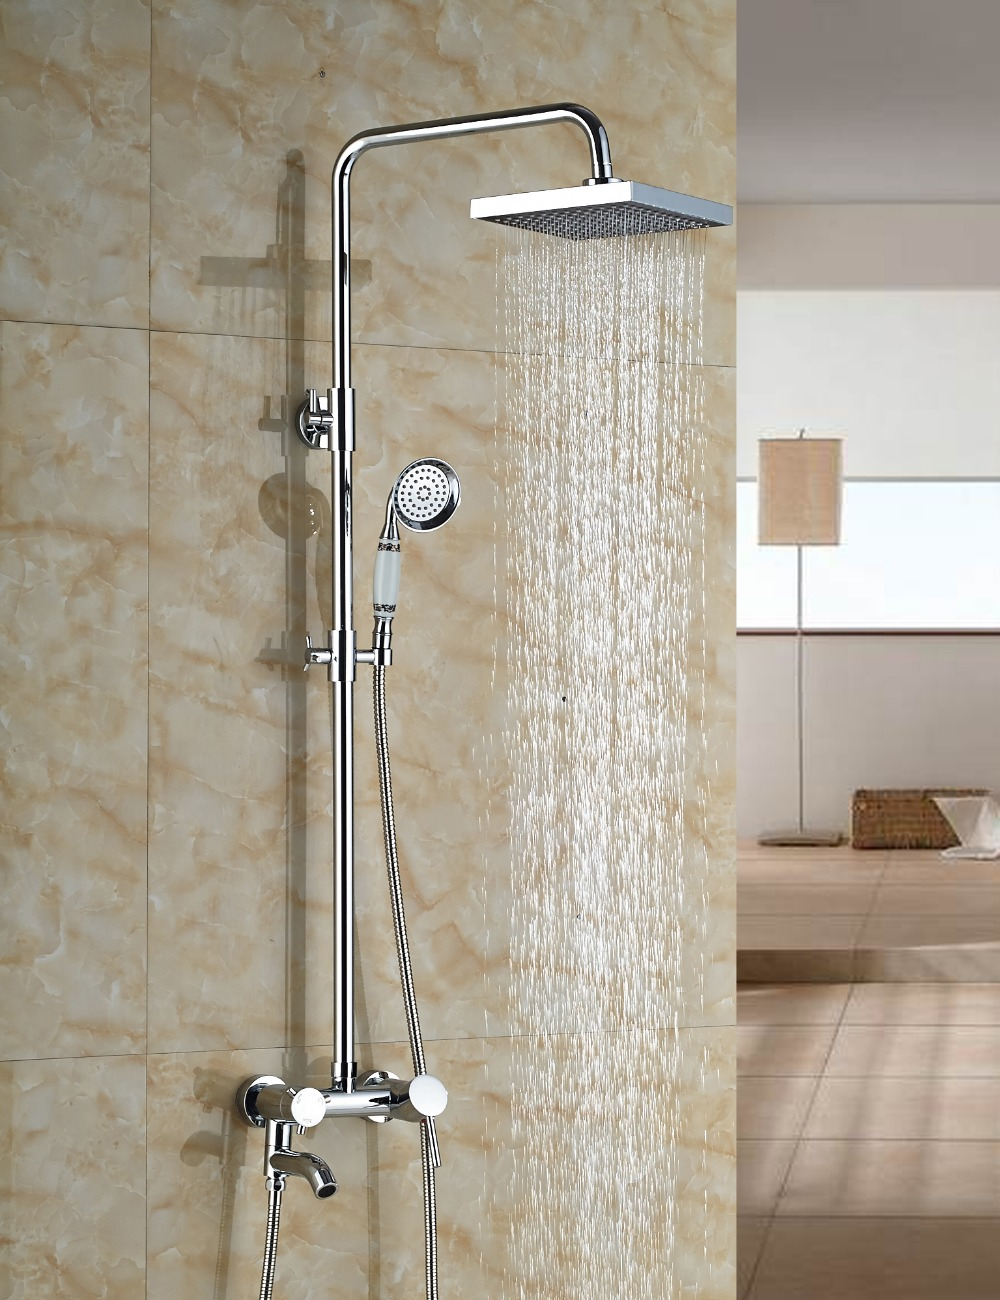 Wholesale And Retail Modern Square Chrome Finish 8 Round Rain Shower Head Faucet Tub Valve Mixer Tap W/ Hand Shower kemaidi new modern wall mount shower faucet mixer tap w rain shower head